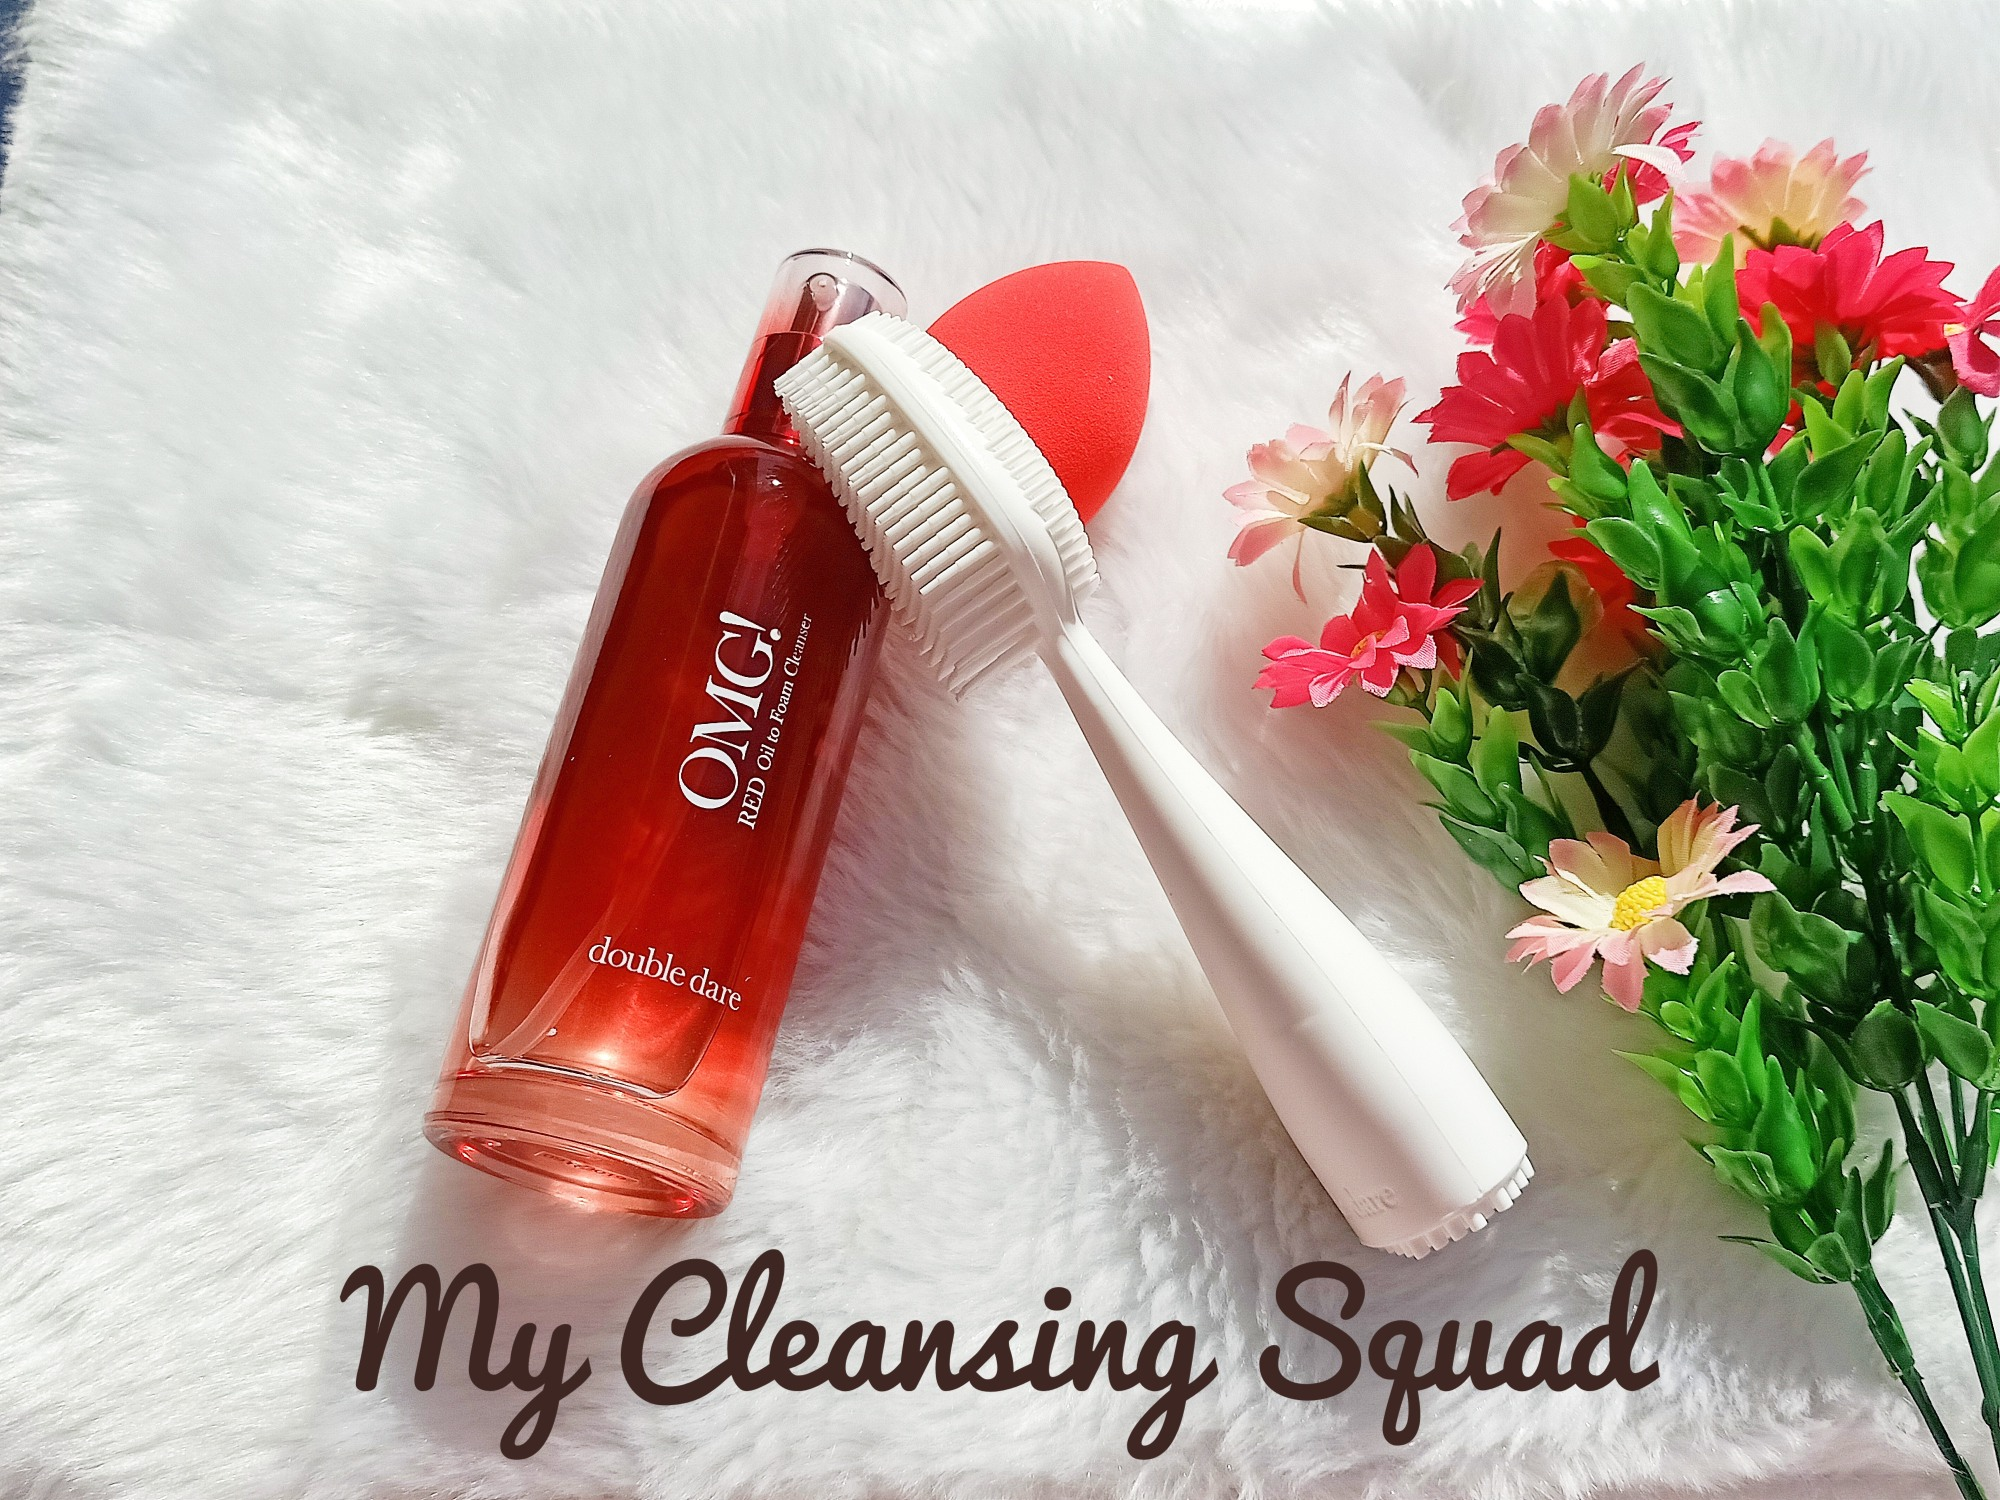 Fun & Relaxing with Double Dare Cleansing Loves!